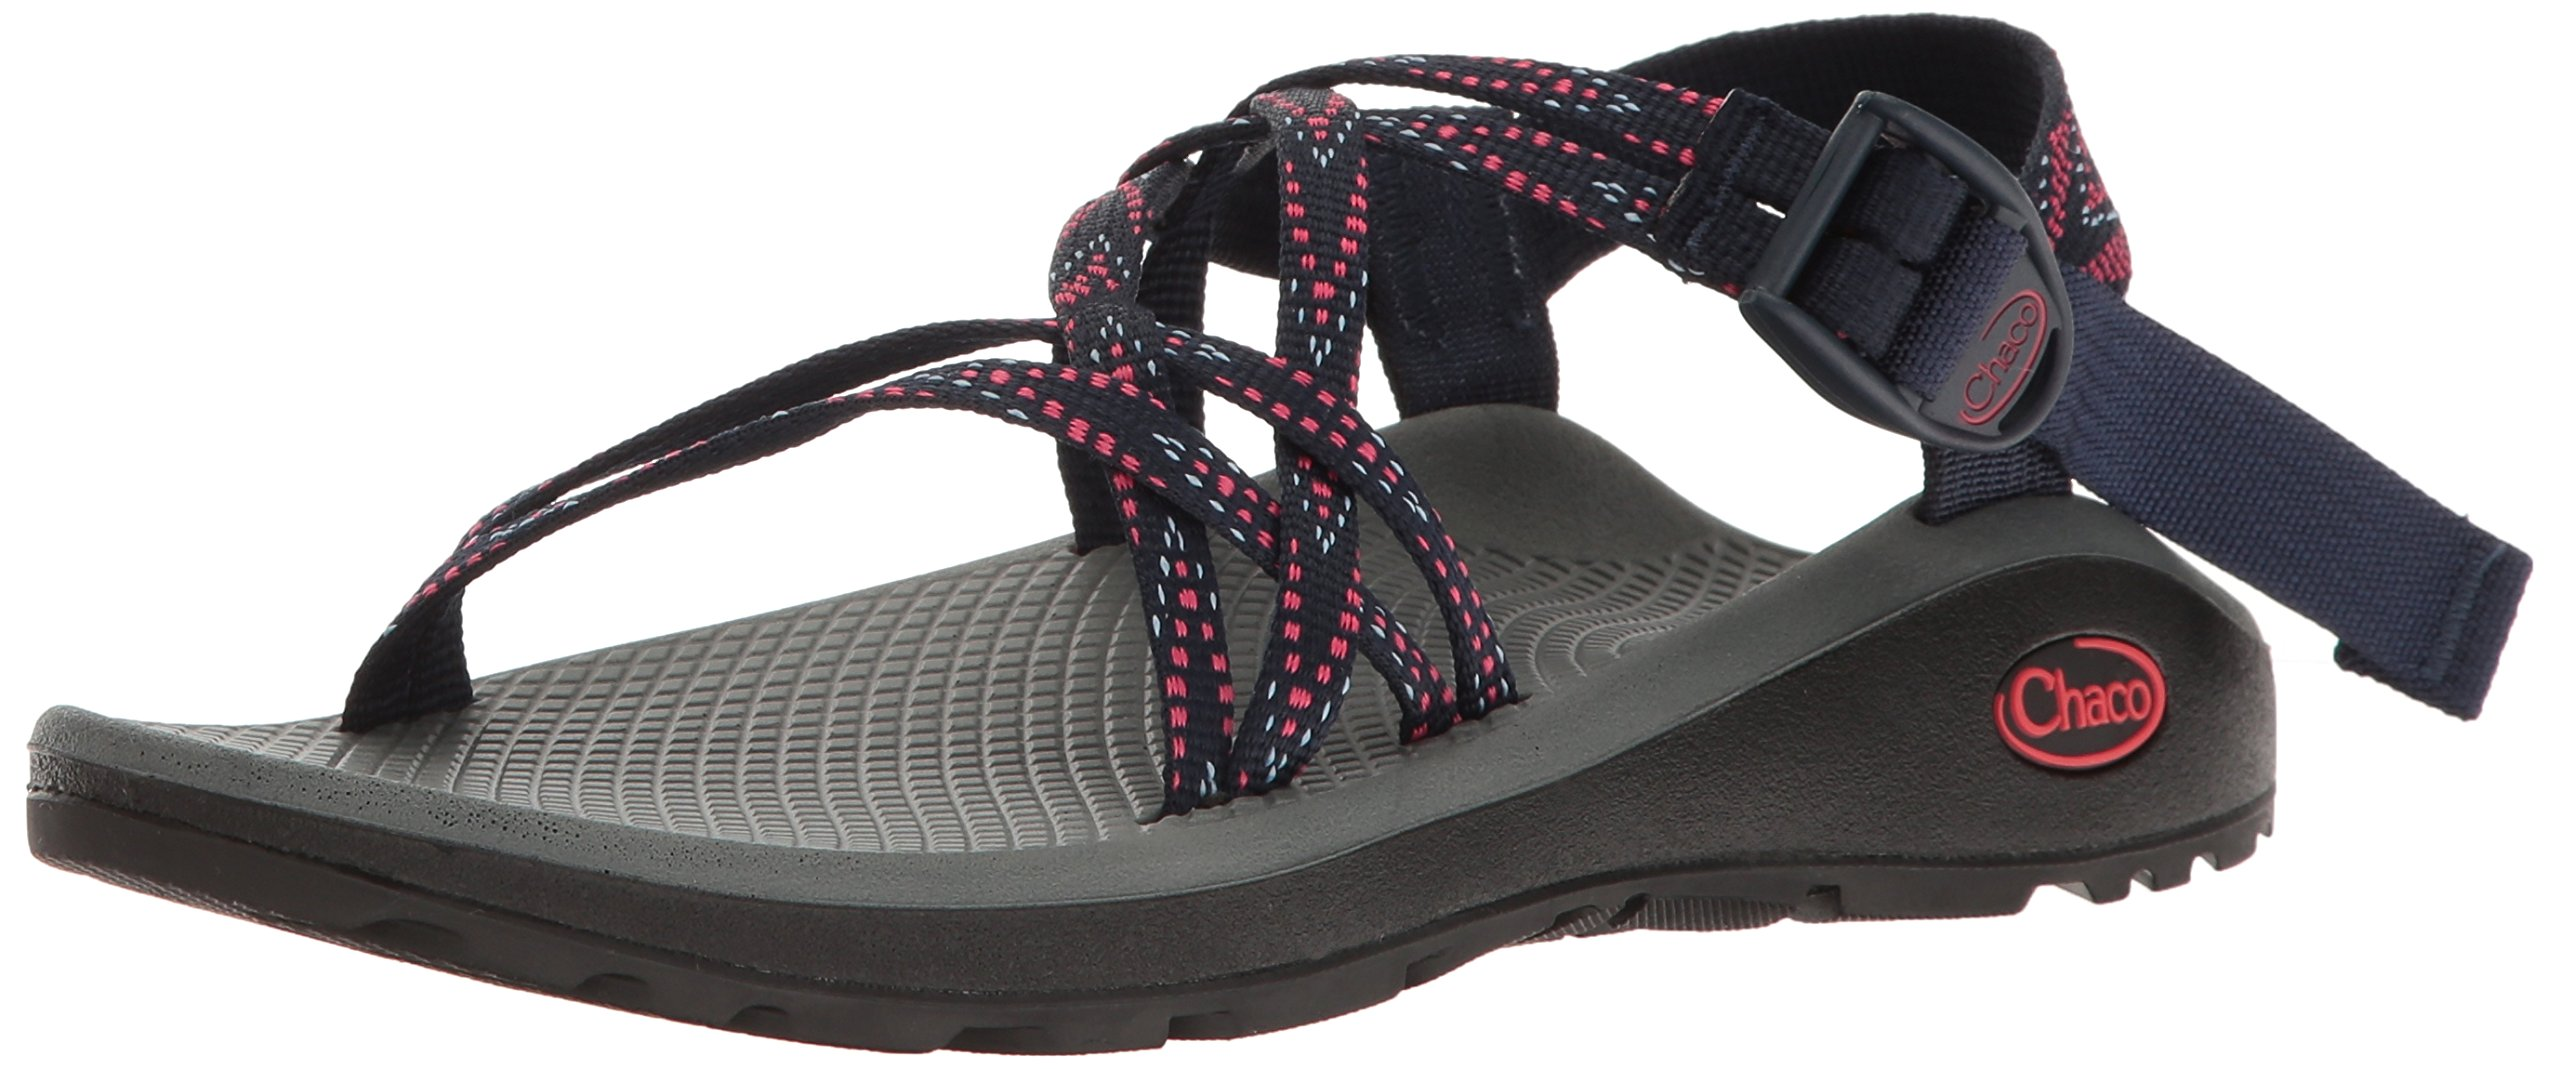 Chaco Women's Zcloud X Athletic Sandal, Action Blue, 8 M US